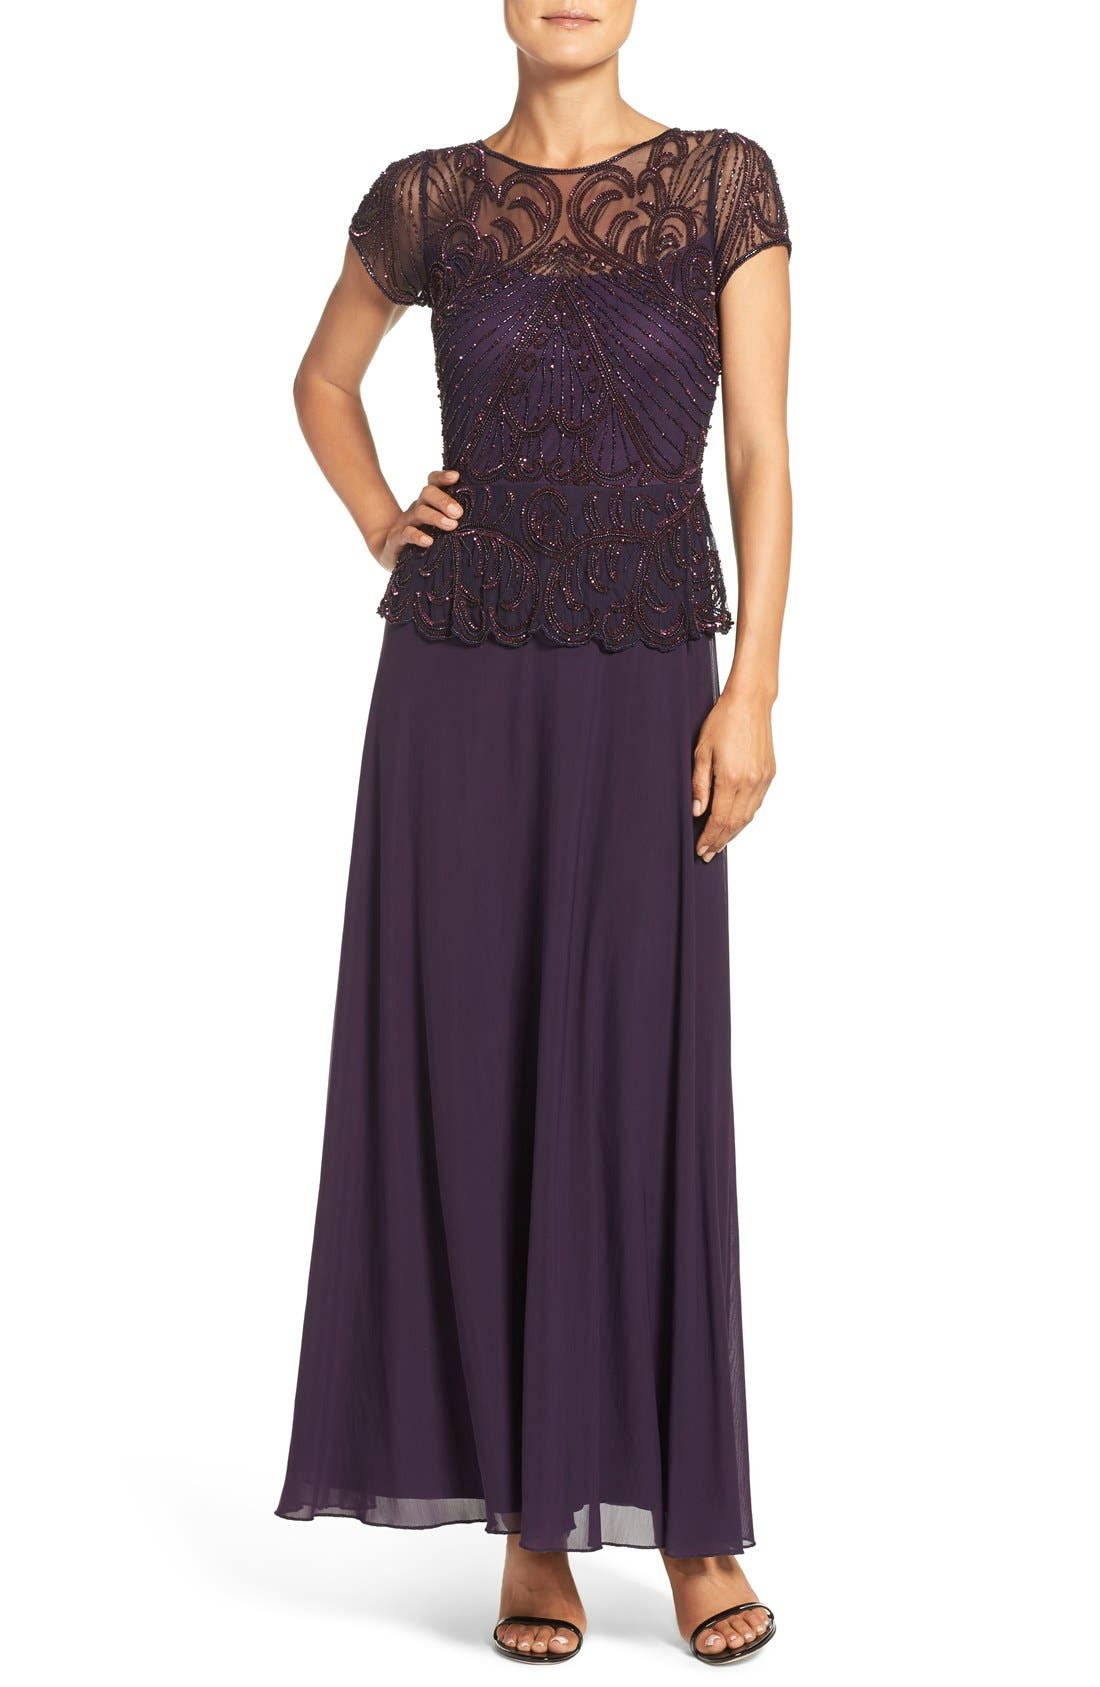 Alternate Image 1 Selected - Pisarro Nights Embellished Mesh Popover Gown